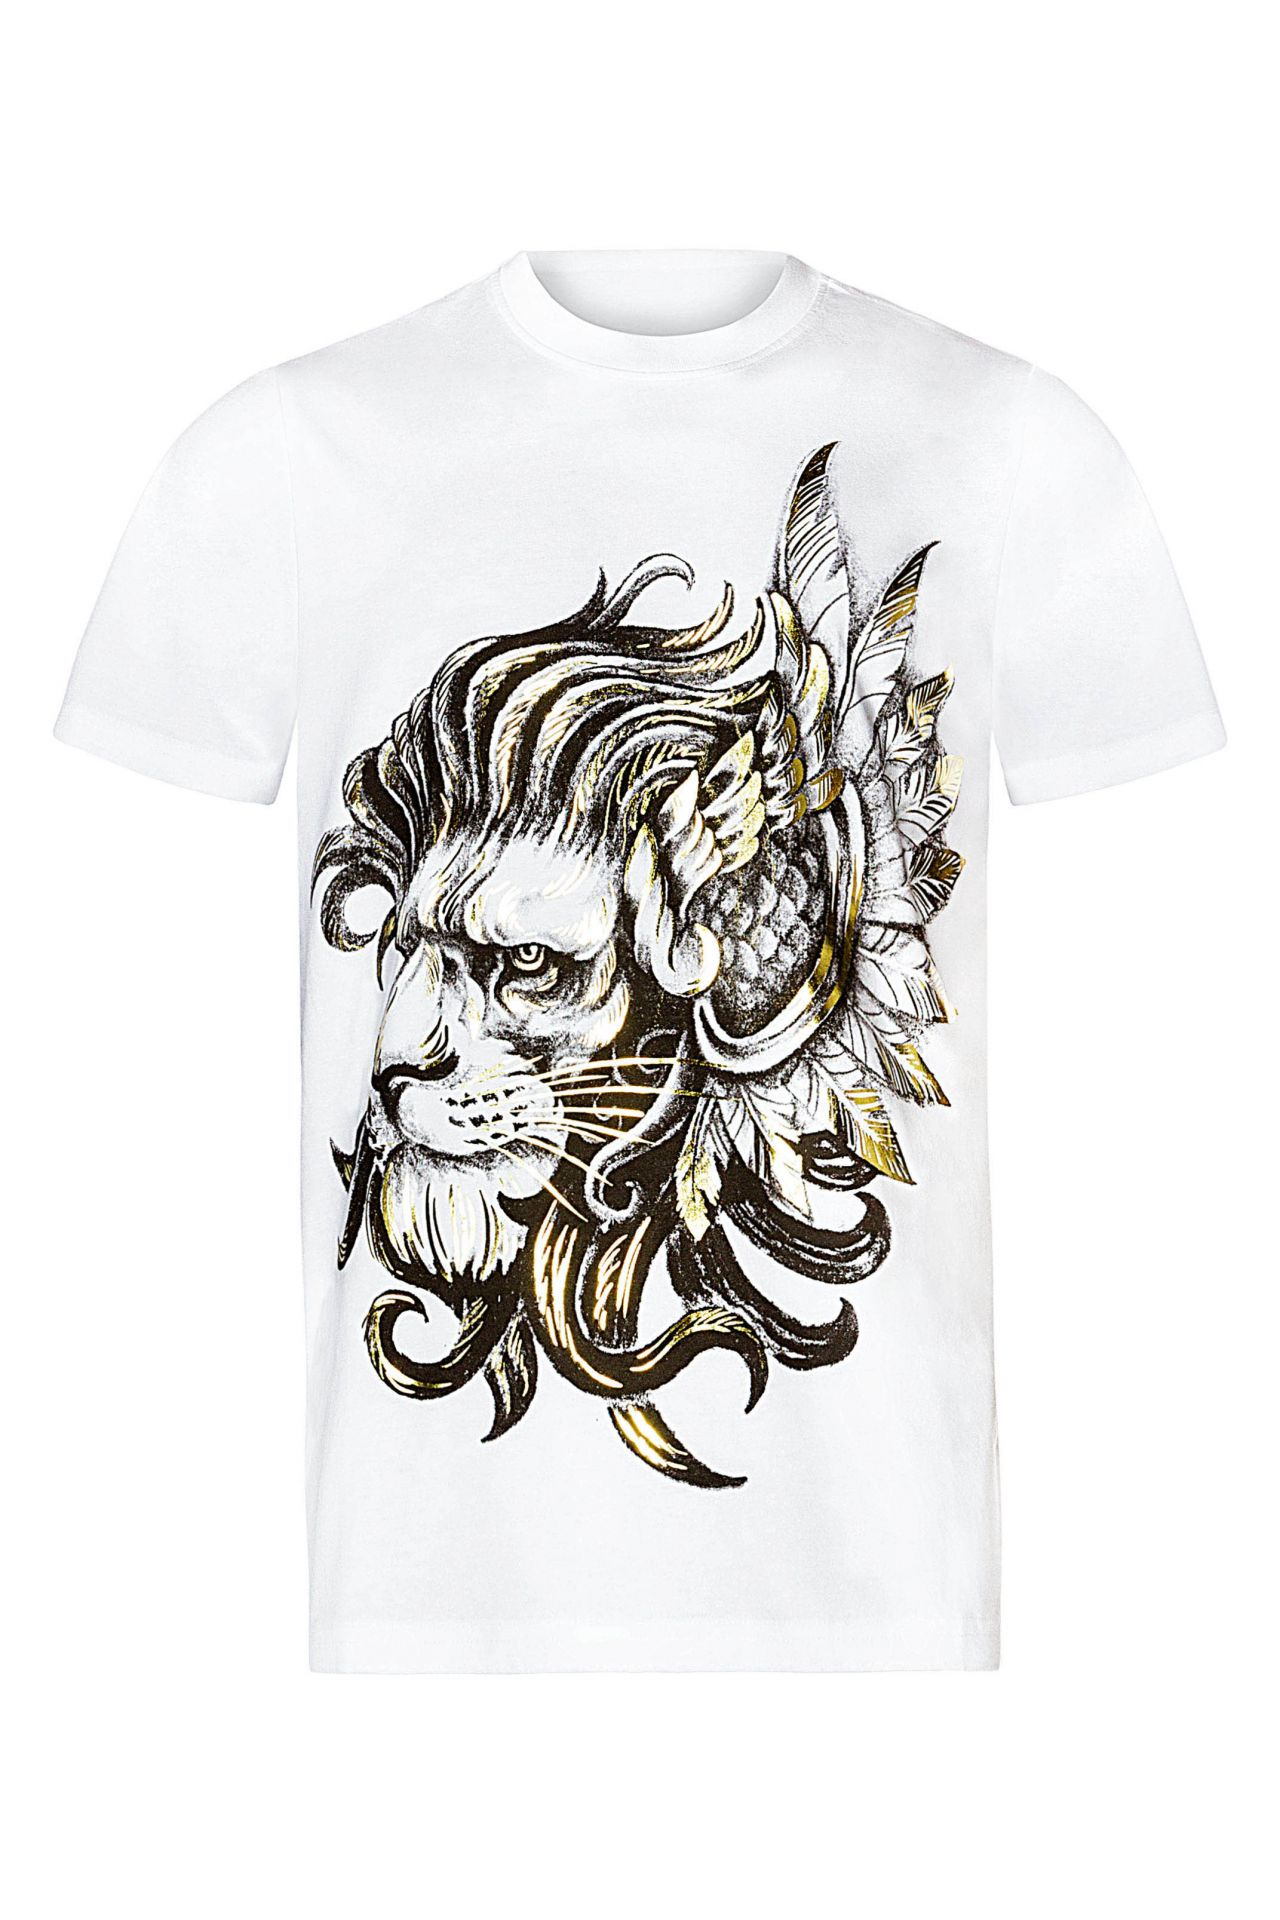 ROBIN'S RED LABEL LION TEE IN WHITE